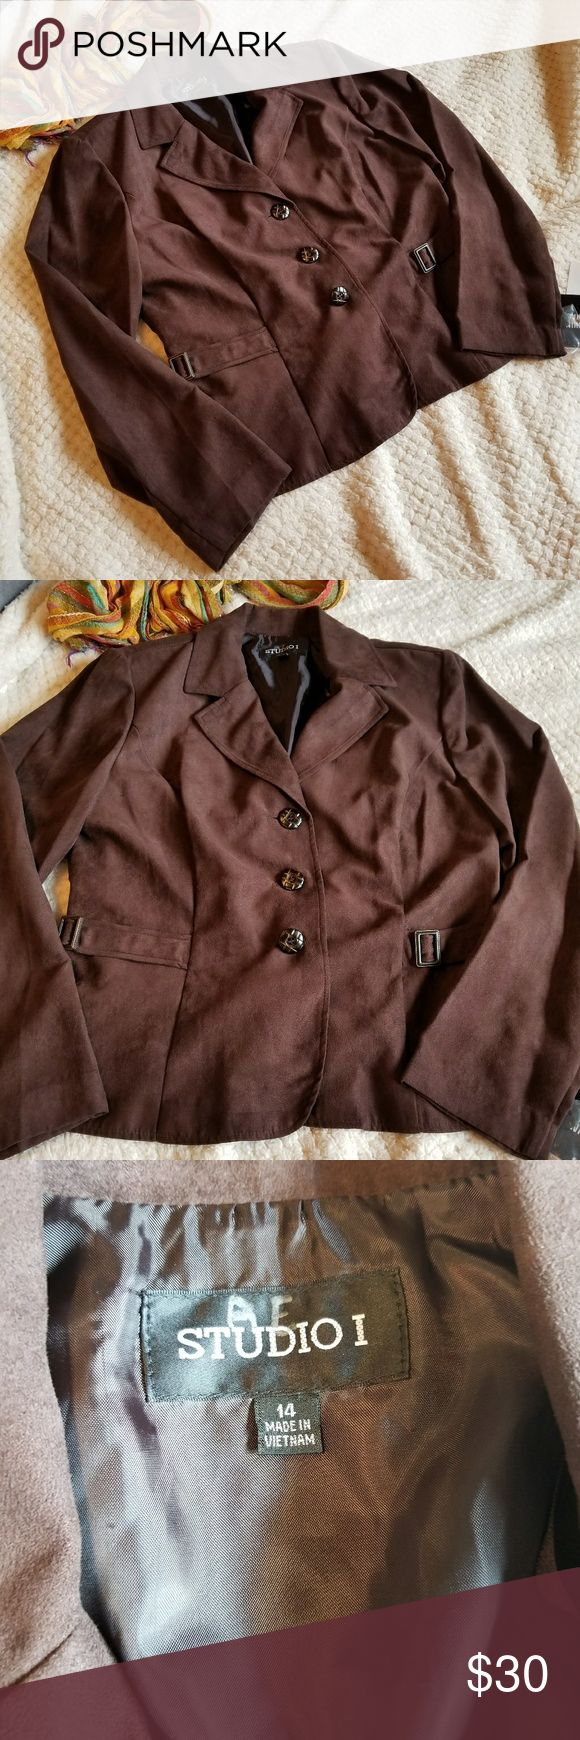 Studio I Brown blazer Size 14. Dark brown. Suede like material. Was part of a two piece set, only jacket for sale. NWT. Built in shoulder pads. Thinner blazer, perfect for fall. Studio I Jackets & Coats Blazers